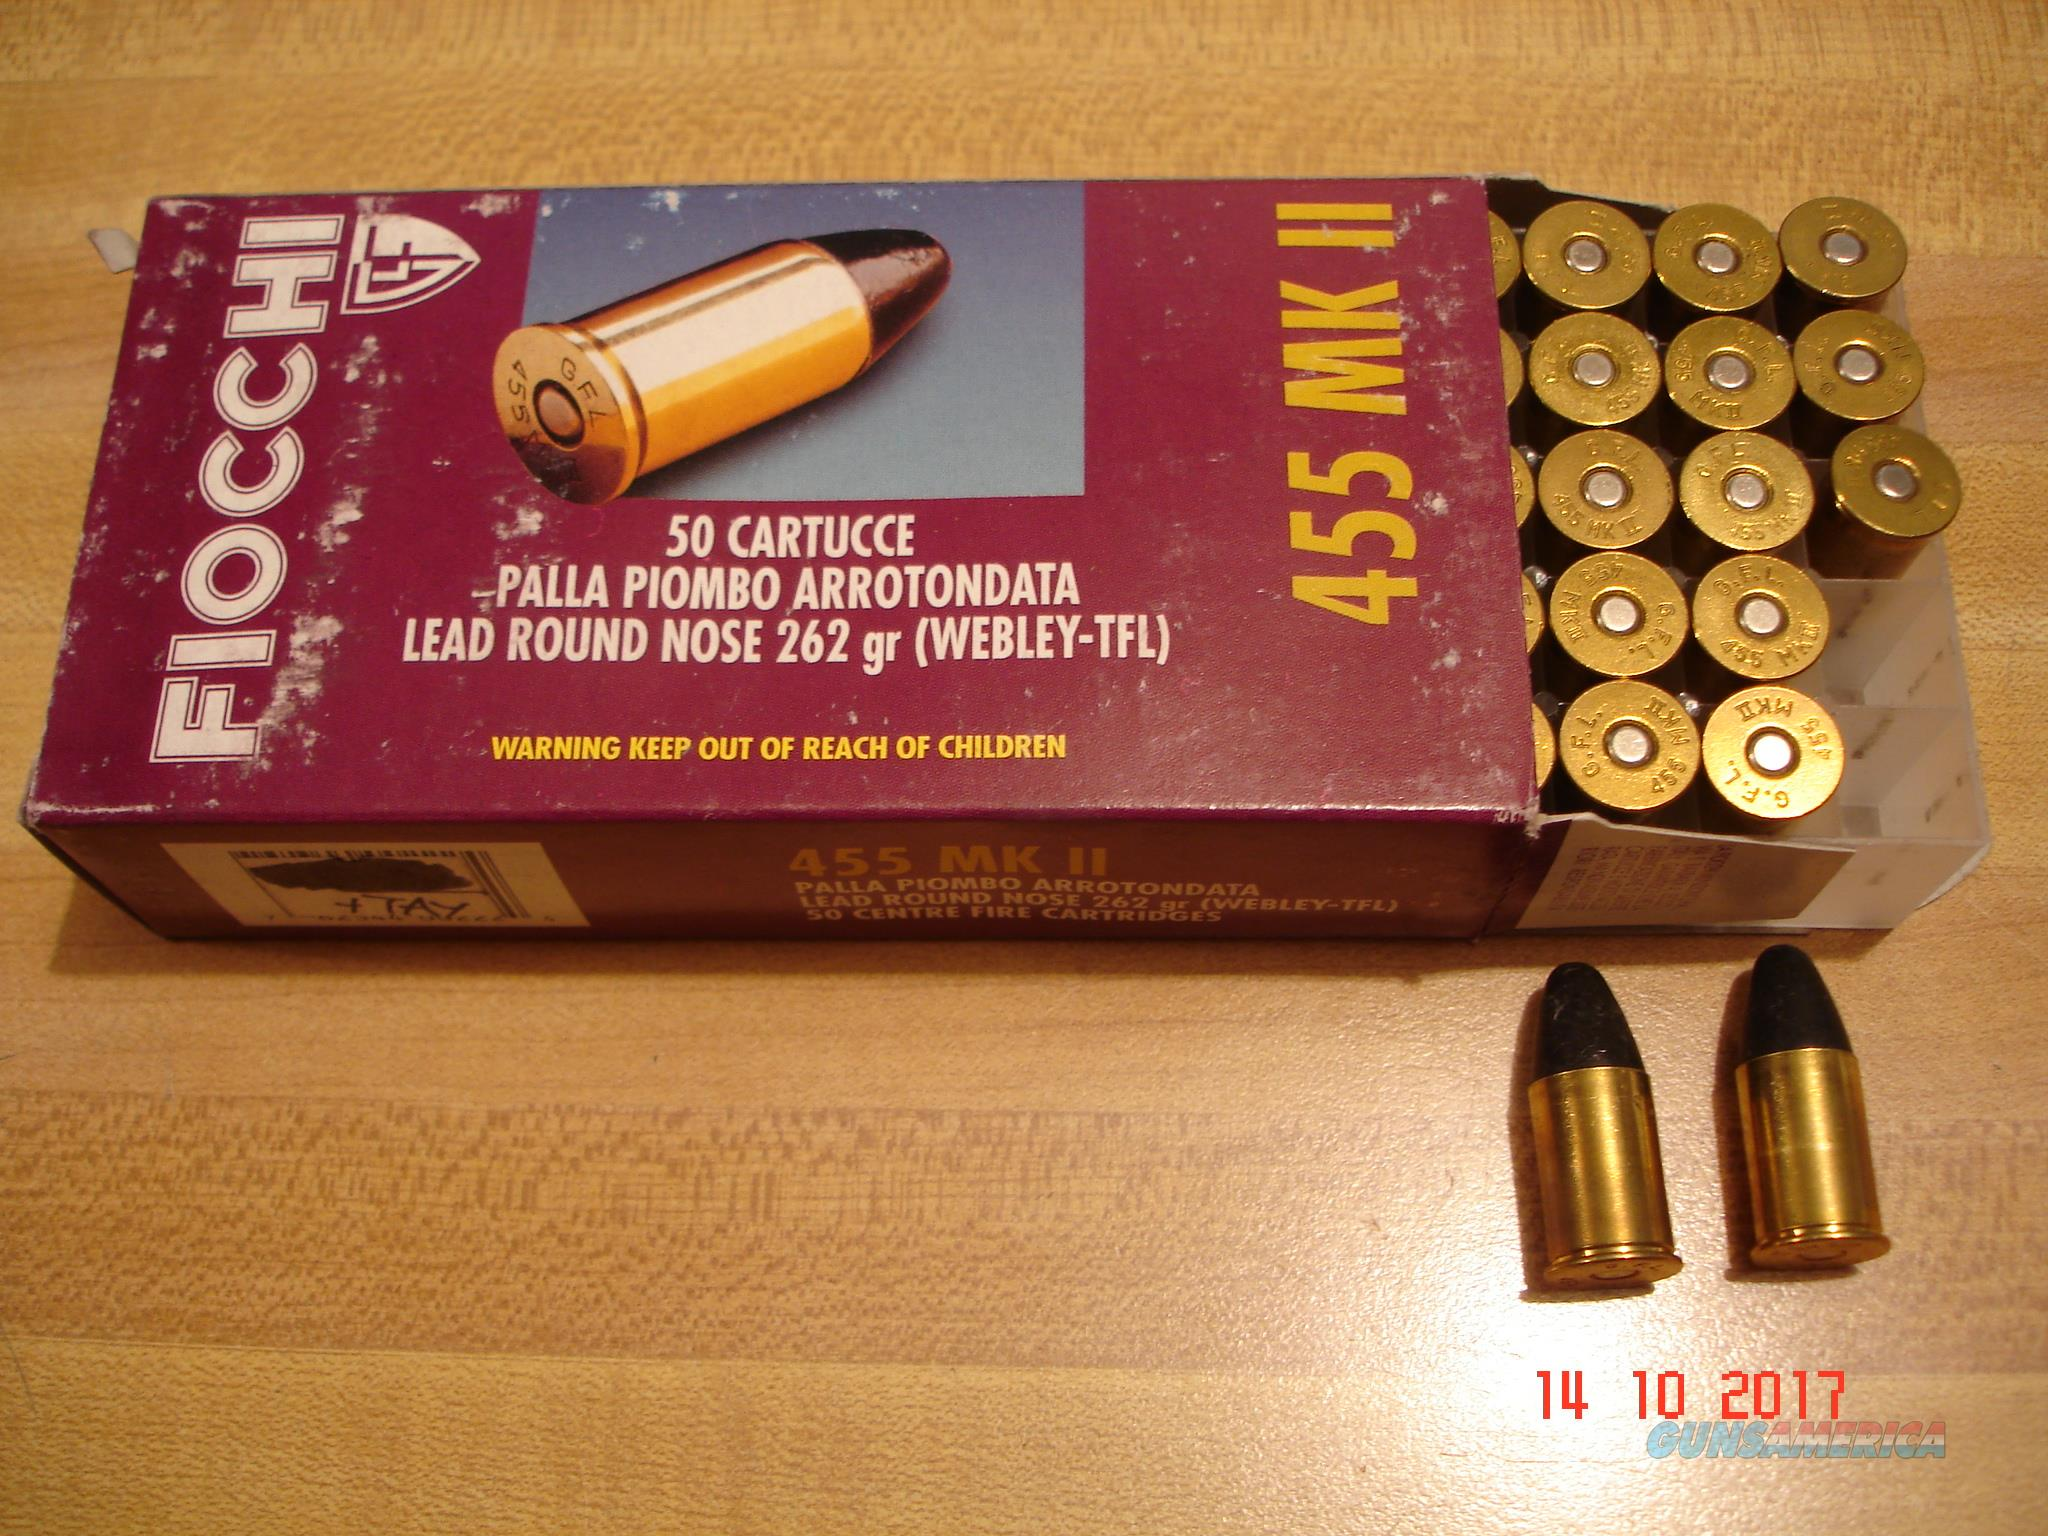 FIOCCHI .455 MKII .455 ELEY 262gr. LRN Ctgs. NIB Hard to find  Non-Guns > Ammunition